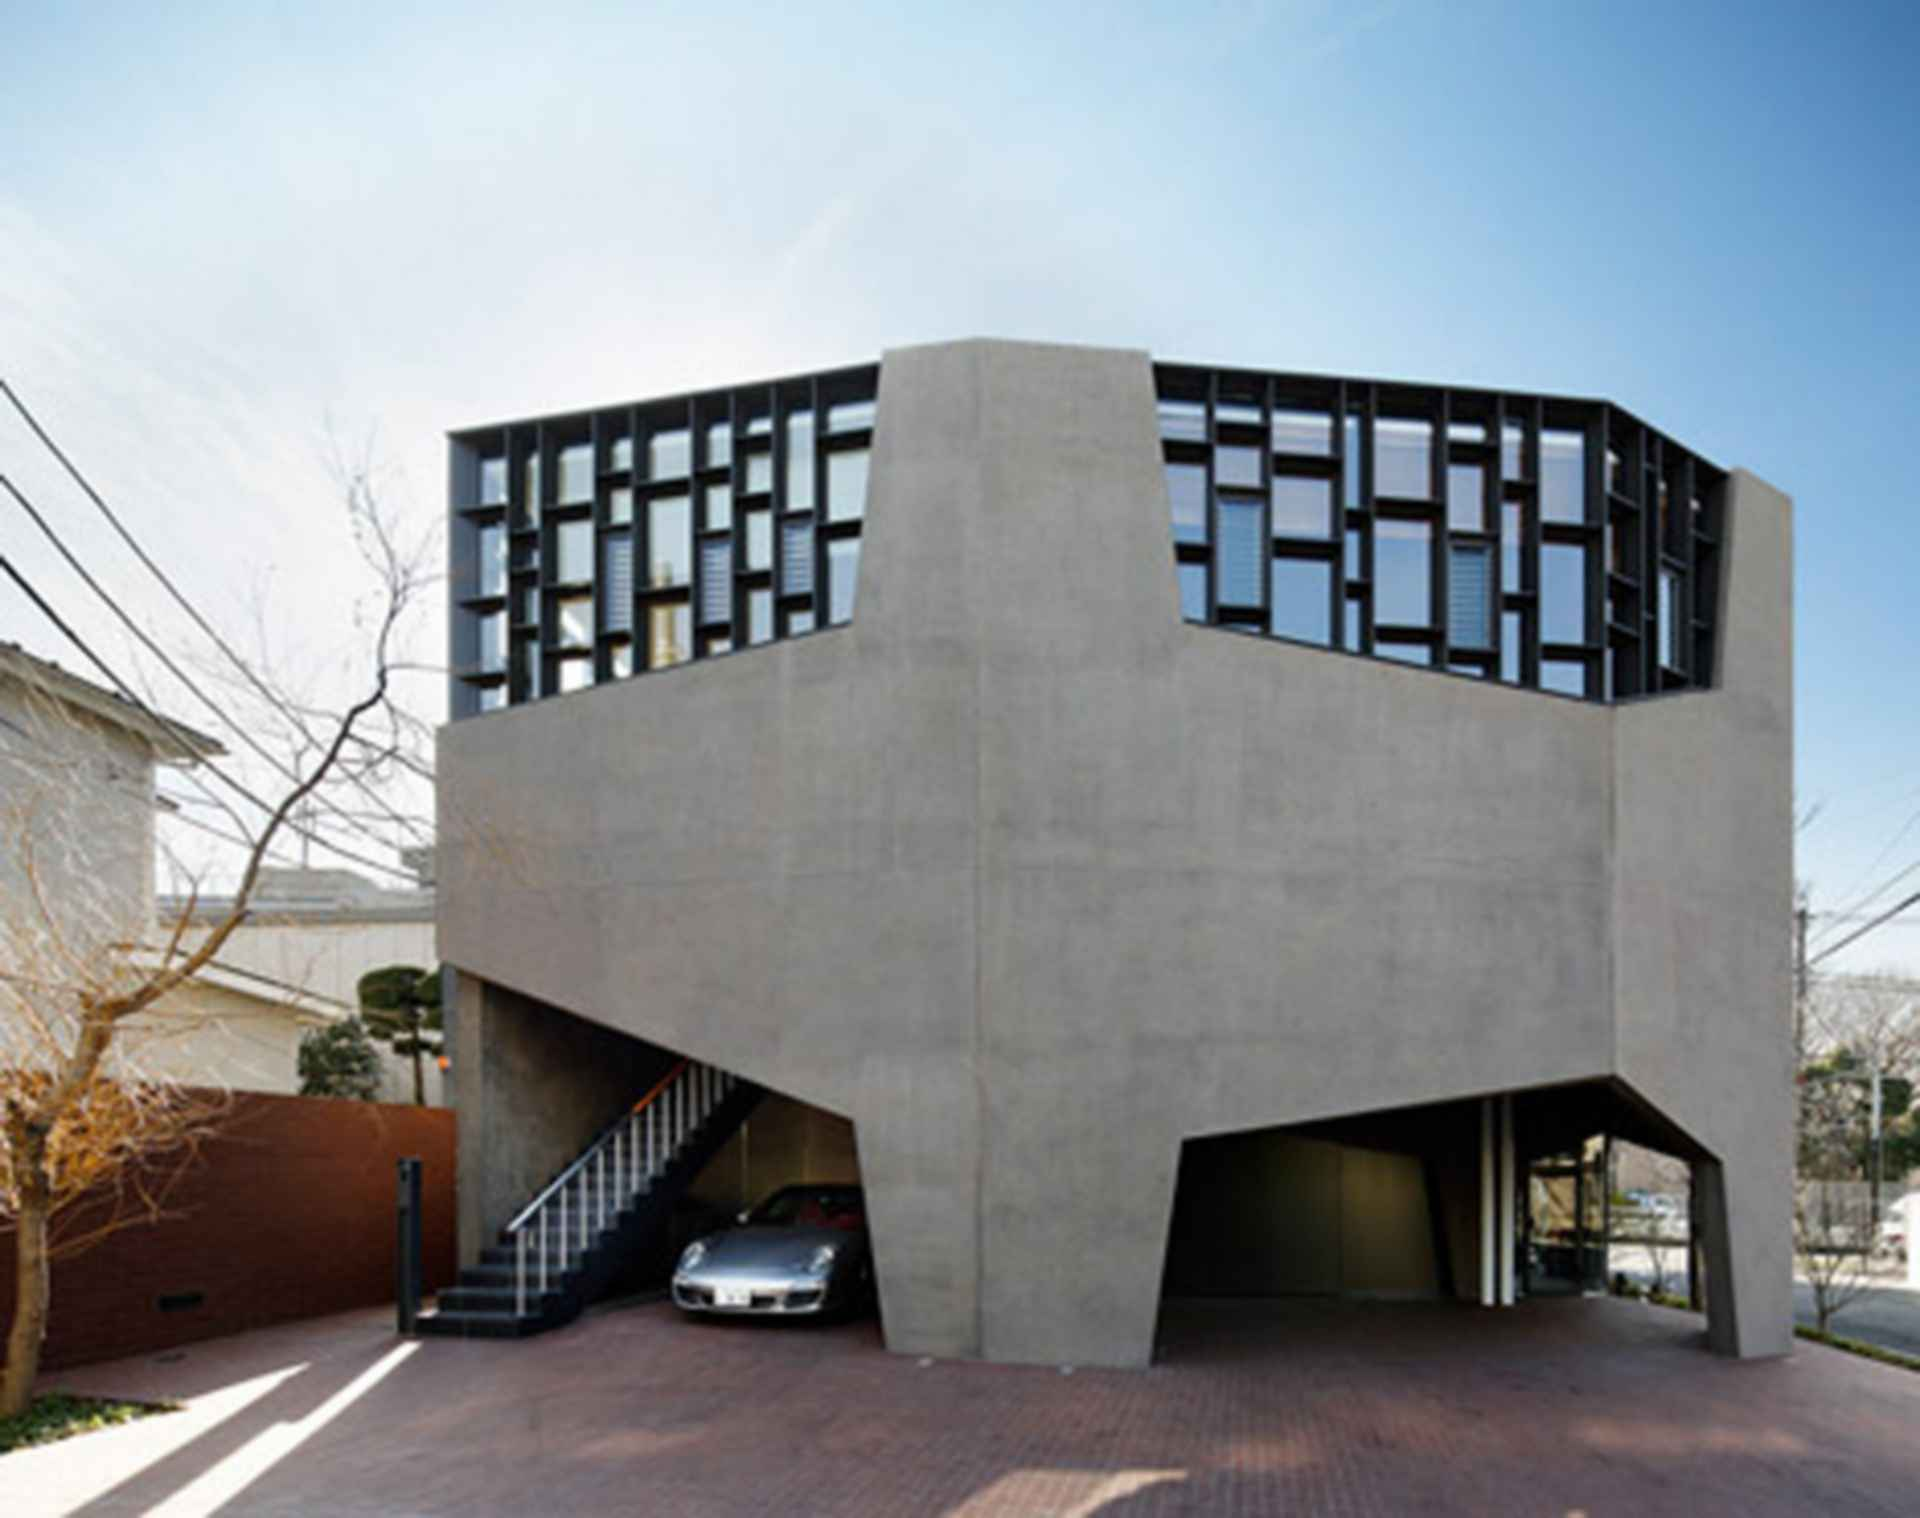 Graz Showroom and Residence - exterior/detailing